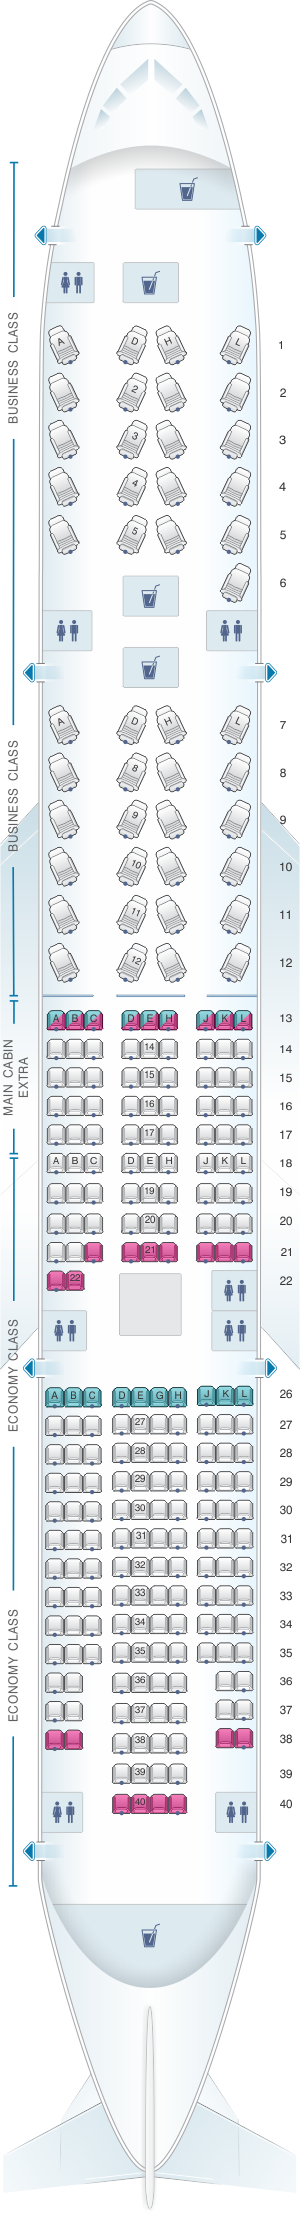 Seat map for American Airlines Boeing B777 200ER 260pax